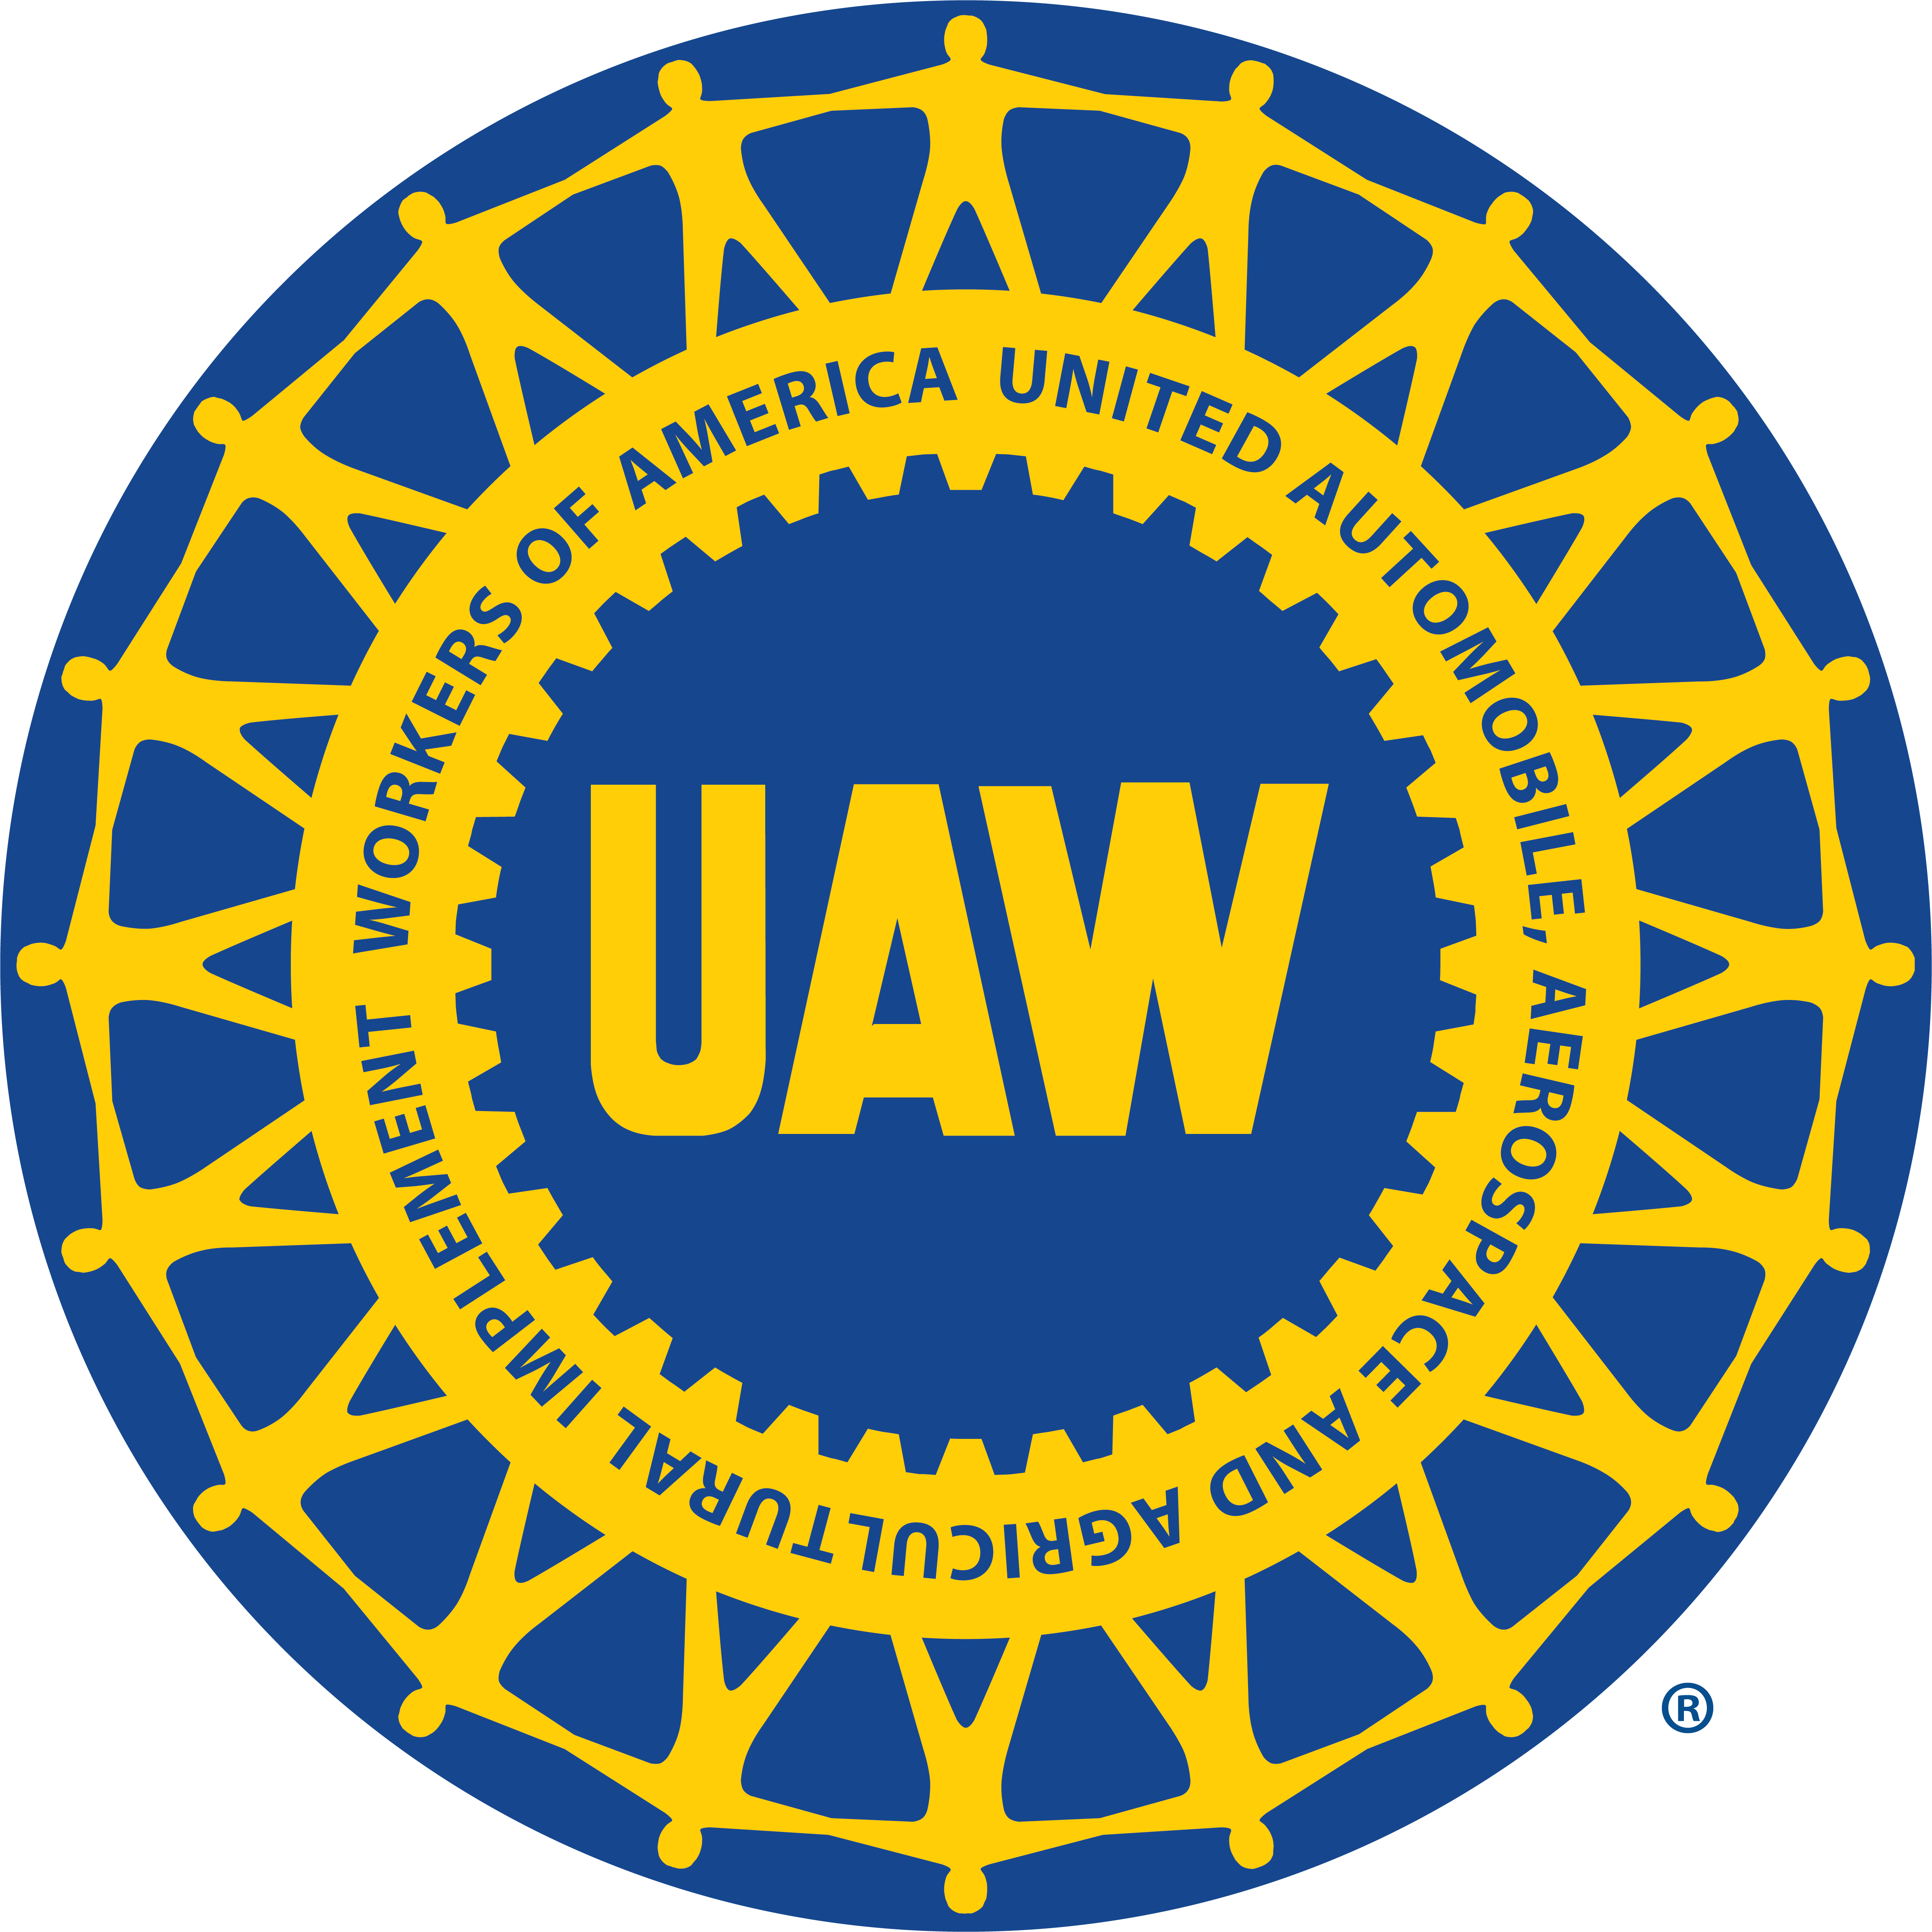 United Auto Workers (UAW)